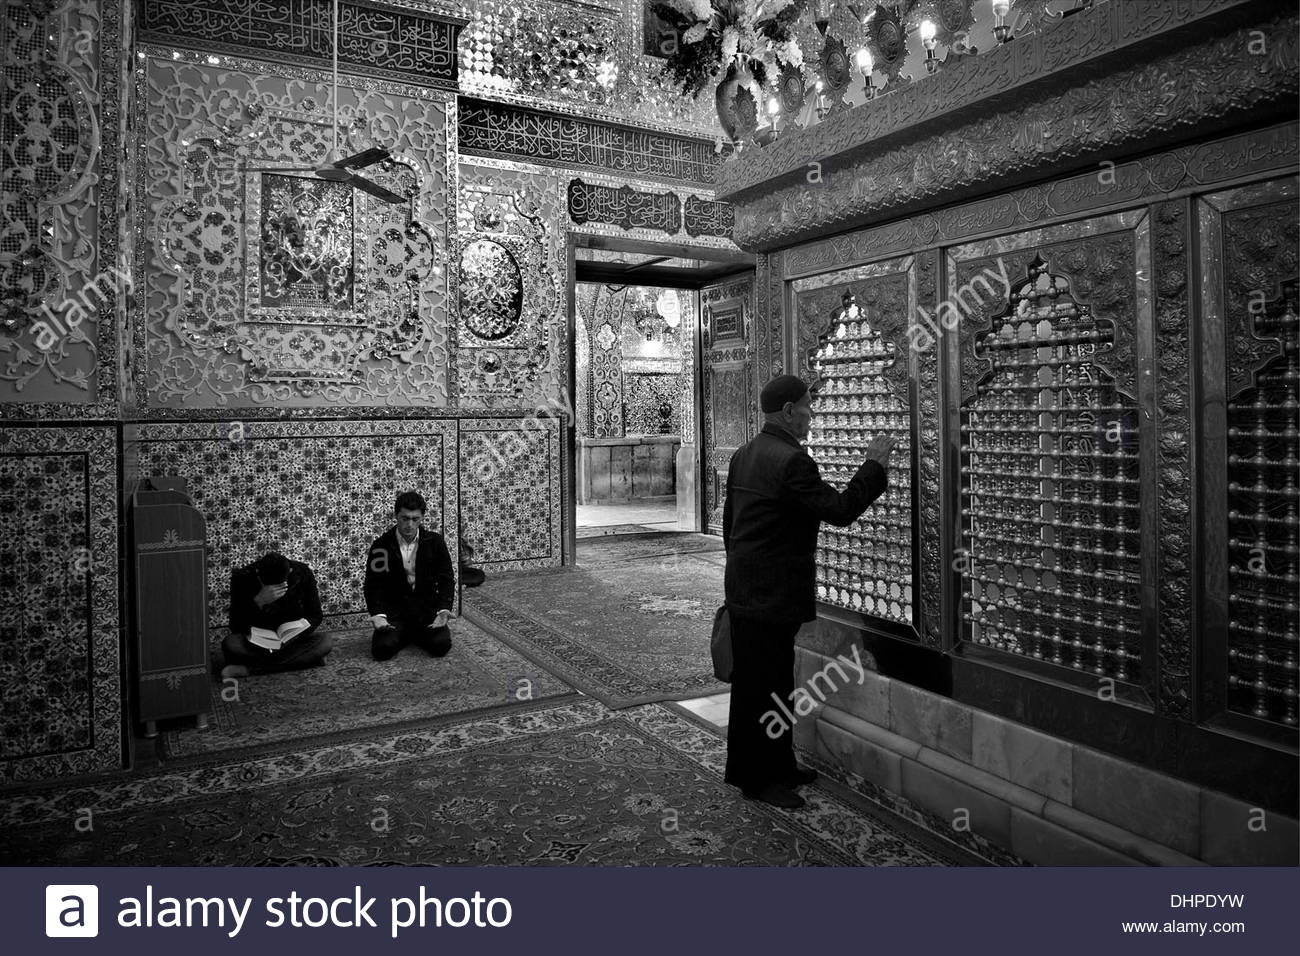 Iran,Qazvin,Shrine of Shahzadeh mosque - Stock Image